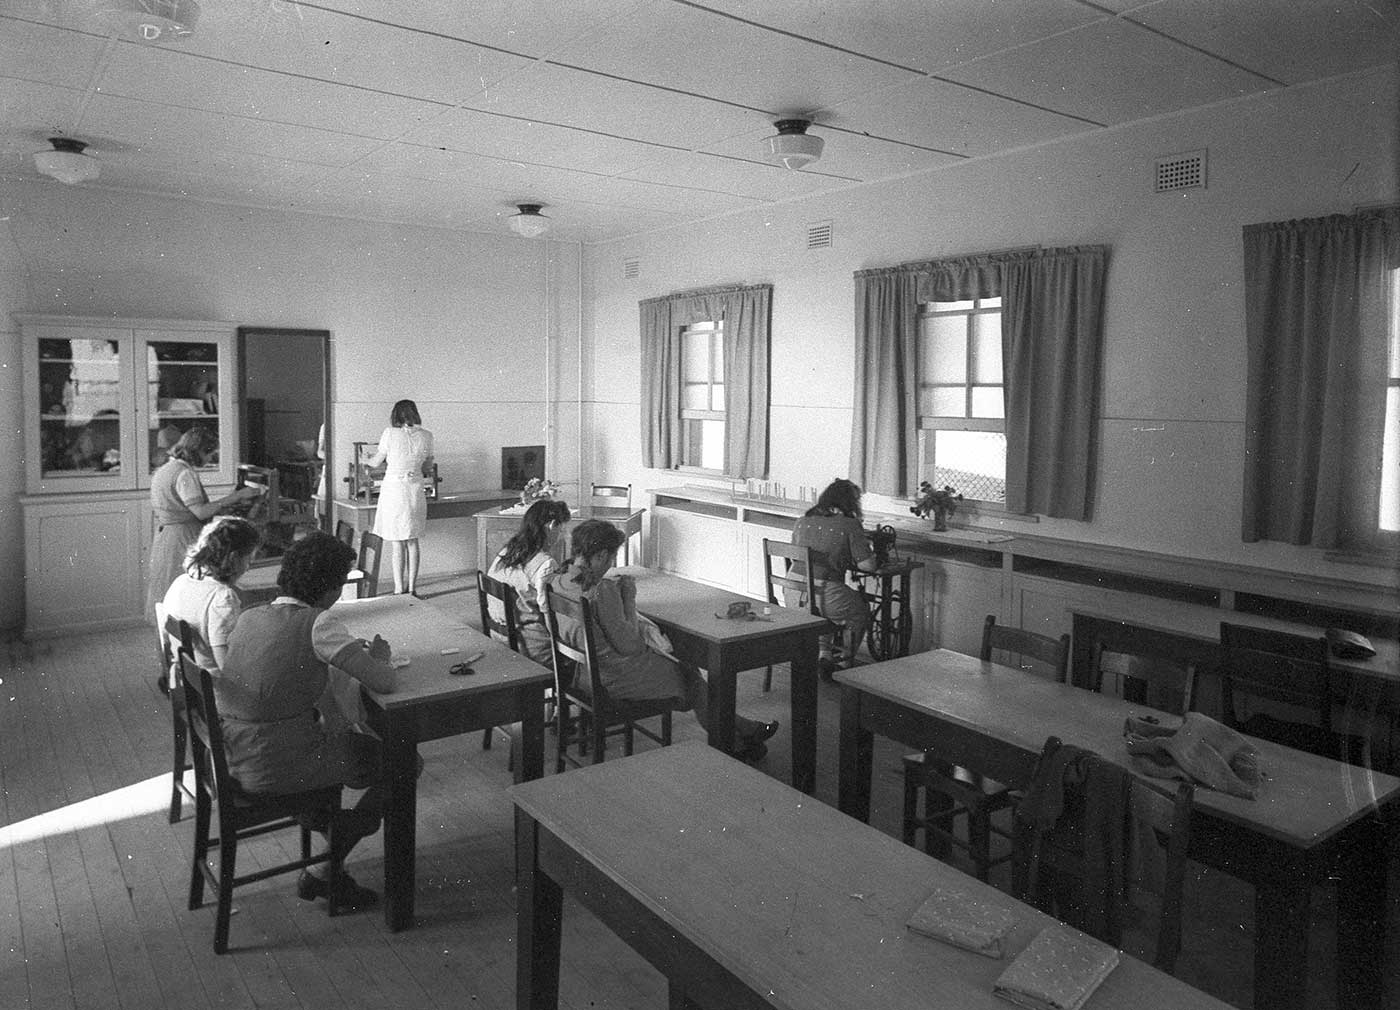 Black and white photo showing seven girls at work in a classroom. The girls have their backs to the camera. Four are seated at desks, one sits at a trundle sewing machine and another two are standing operating machines at the far end of the room. - click to view larger image